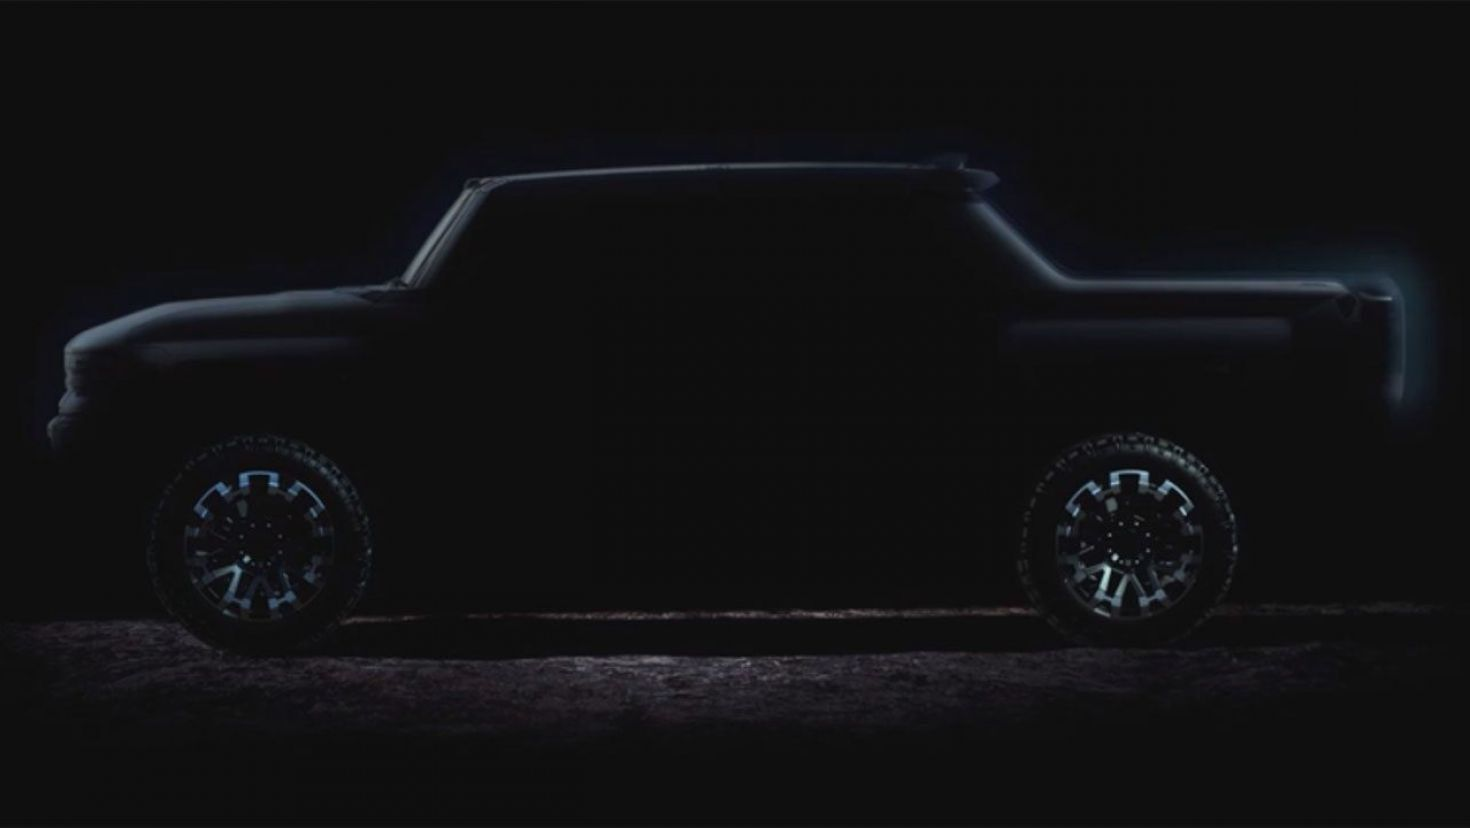 Gmc Hummer Ev Teased In Photos Ahead Of Fall Reveal In 2020